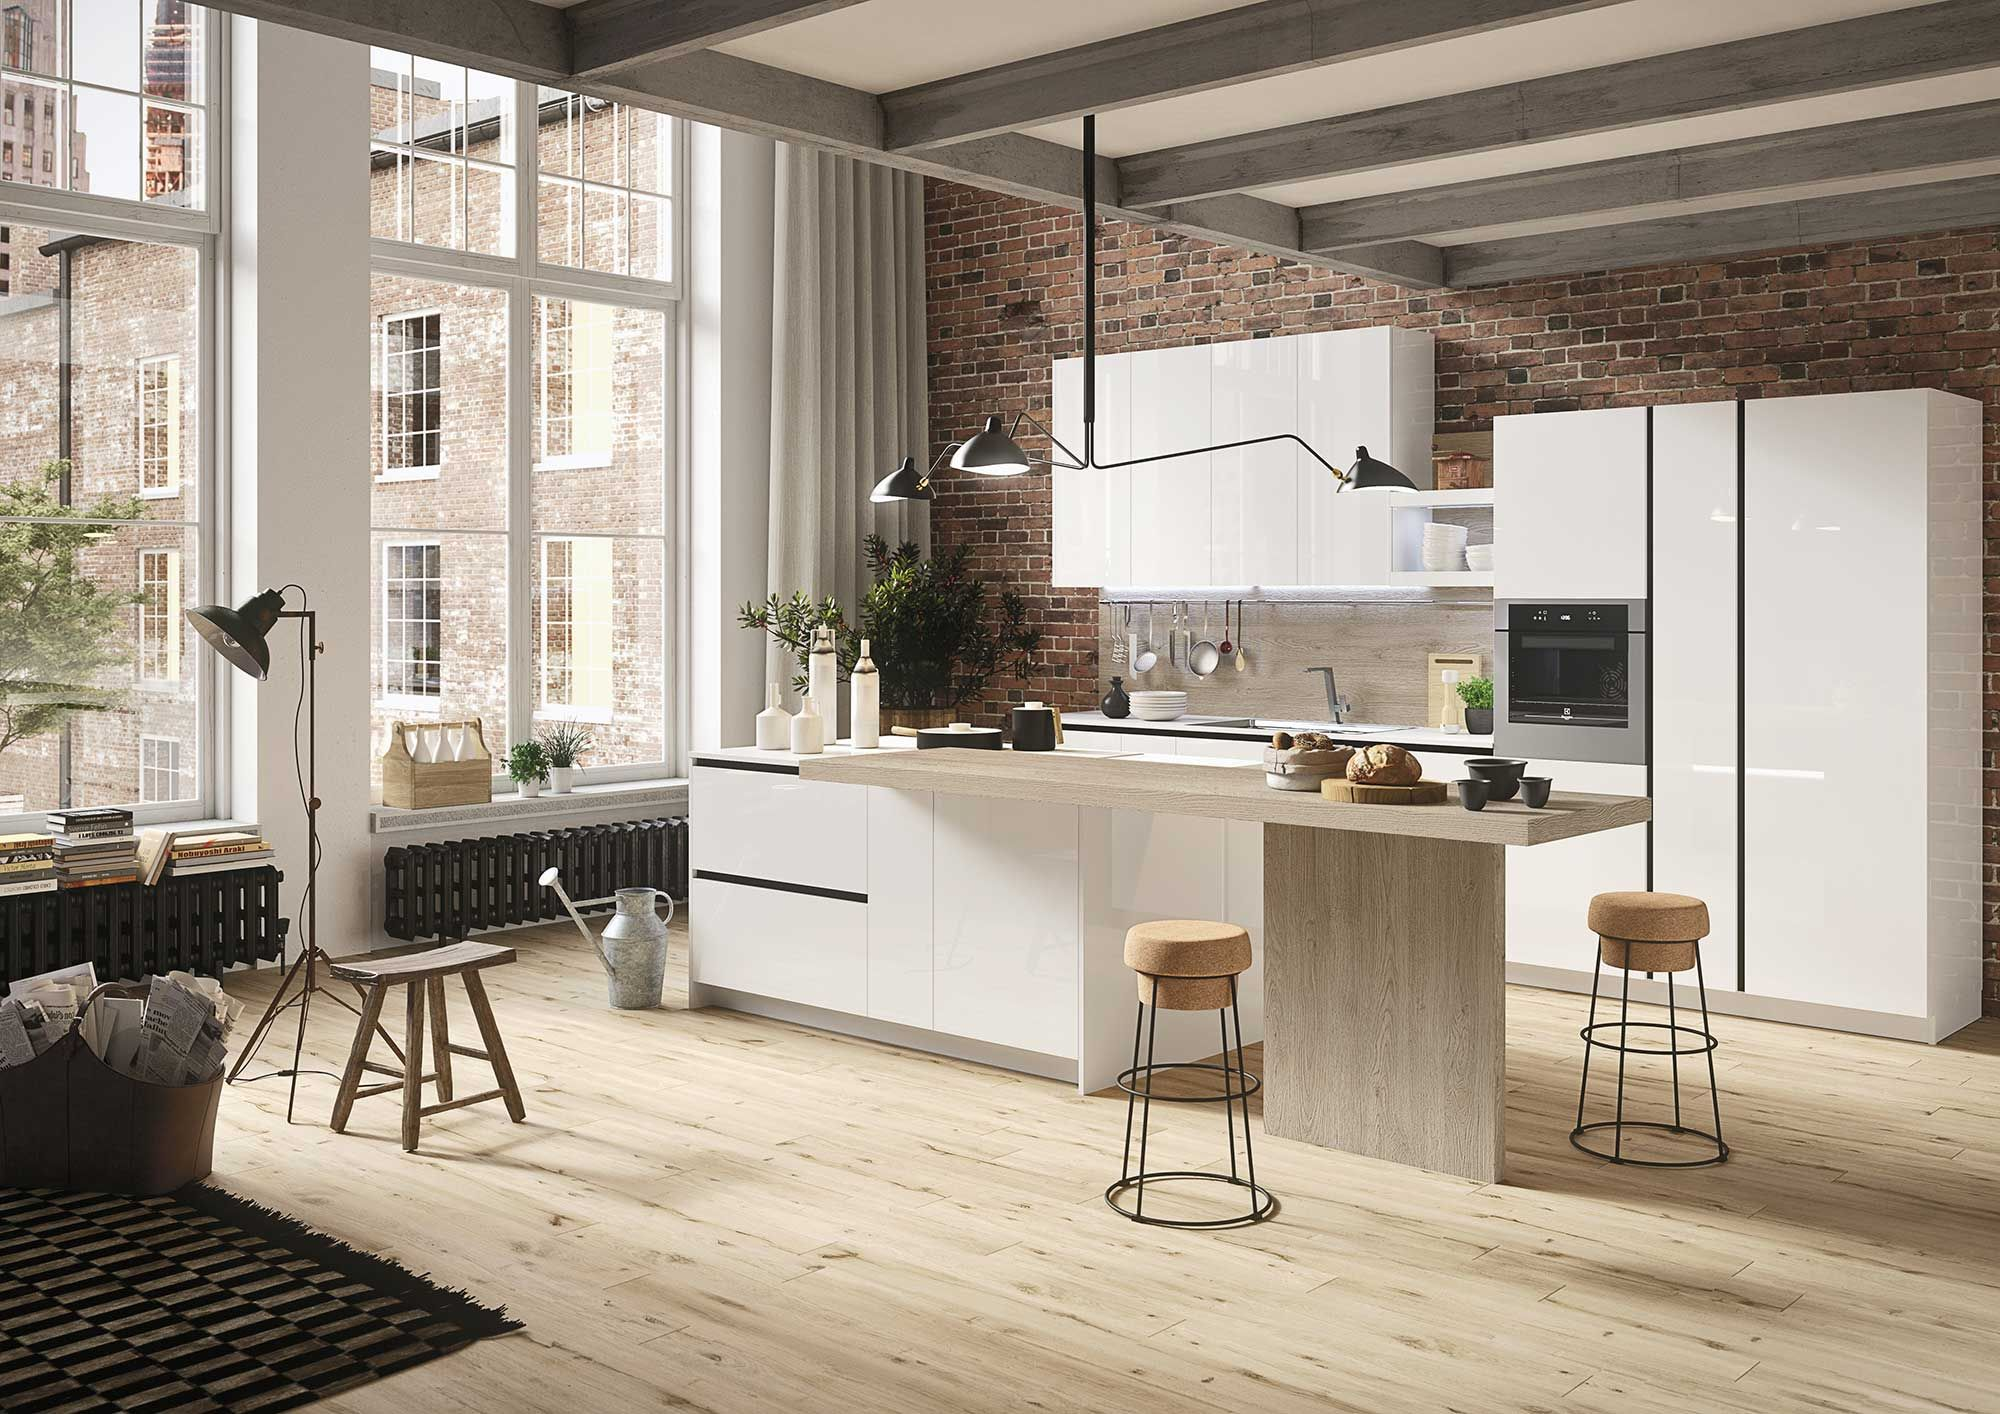 First is a kitchen project designed for